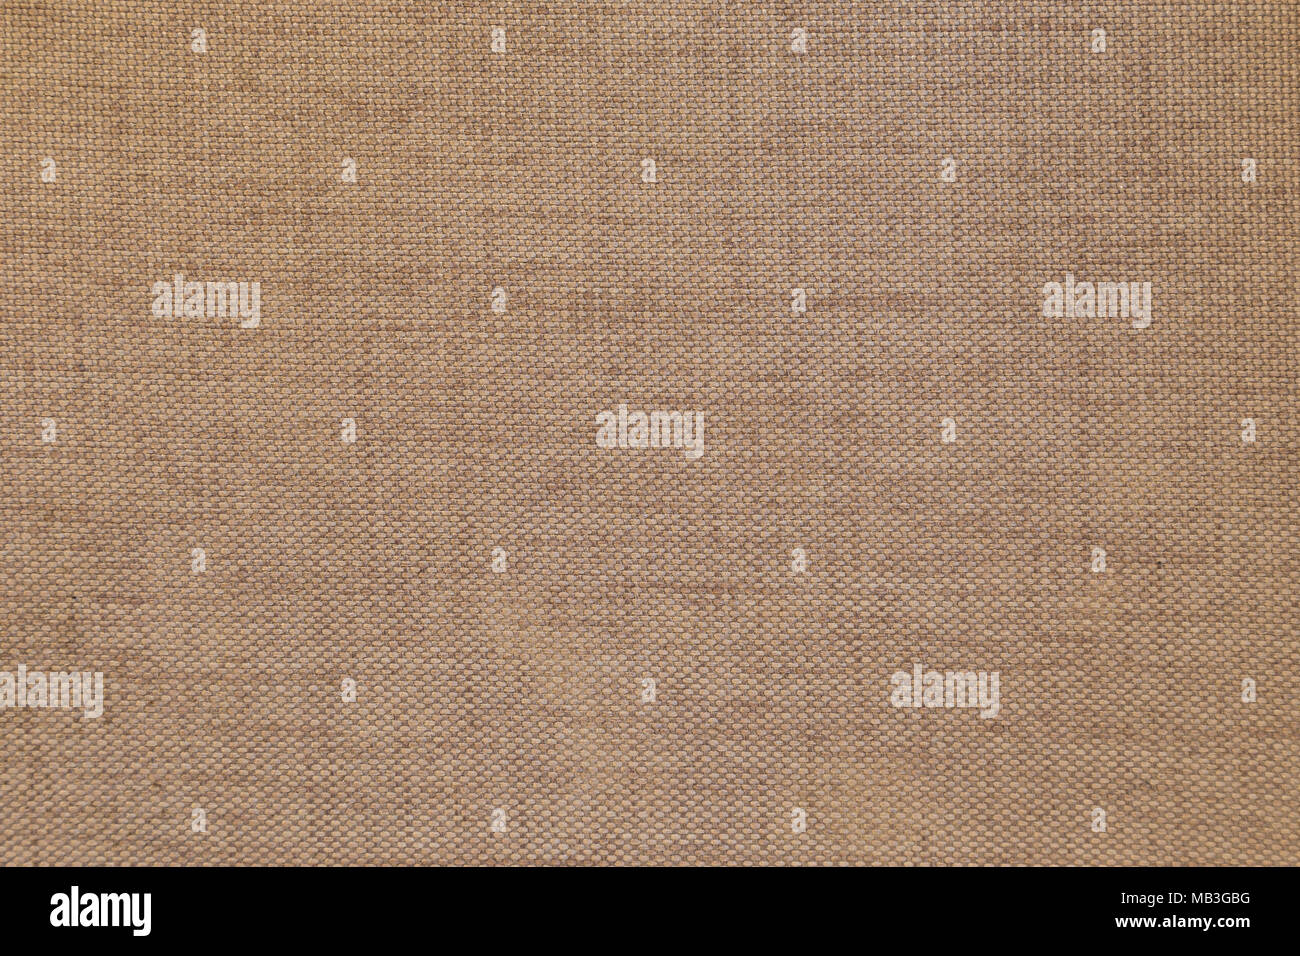 Brown Furniture Fabric Texture Abstract Background Stock Photo